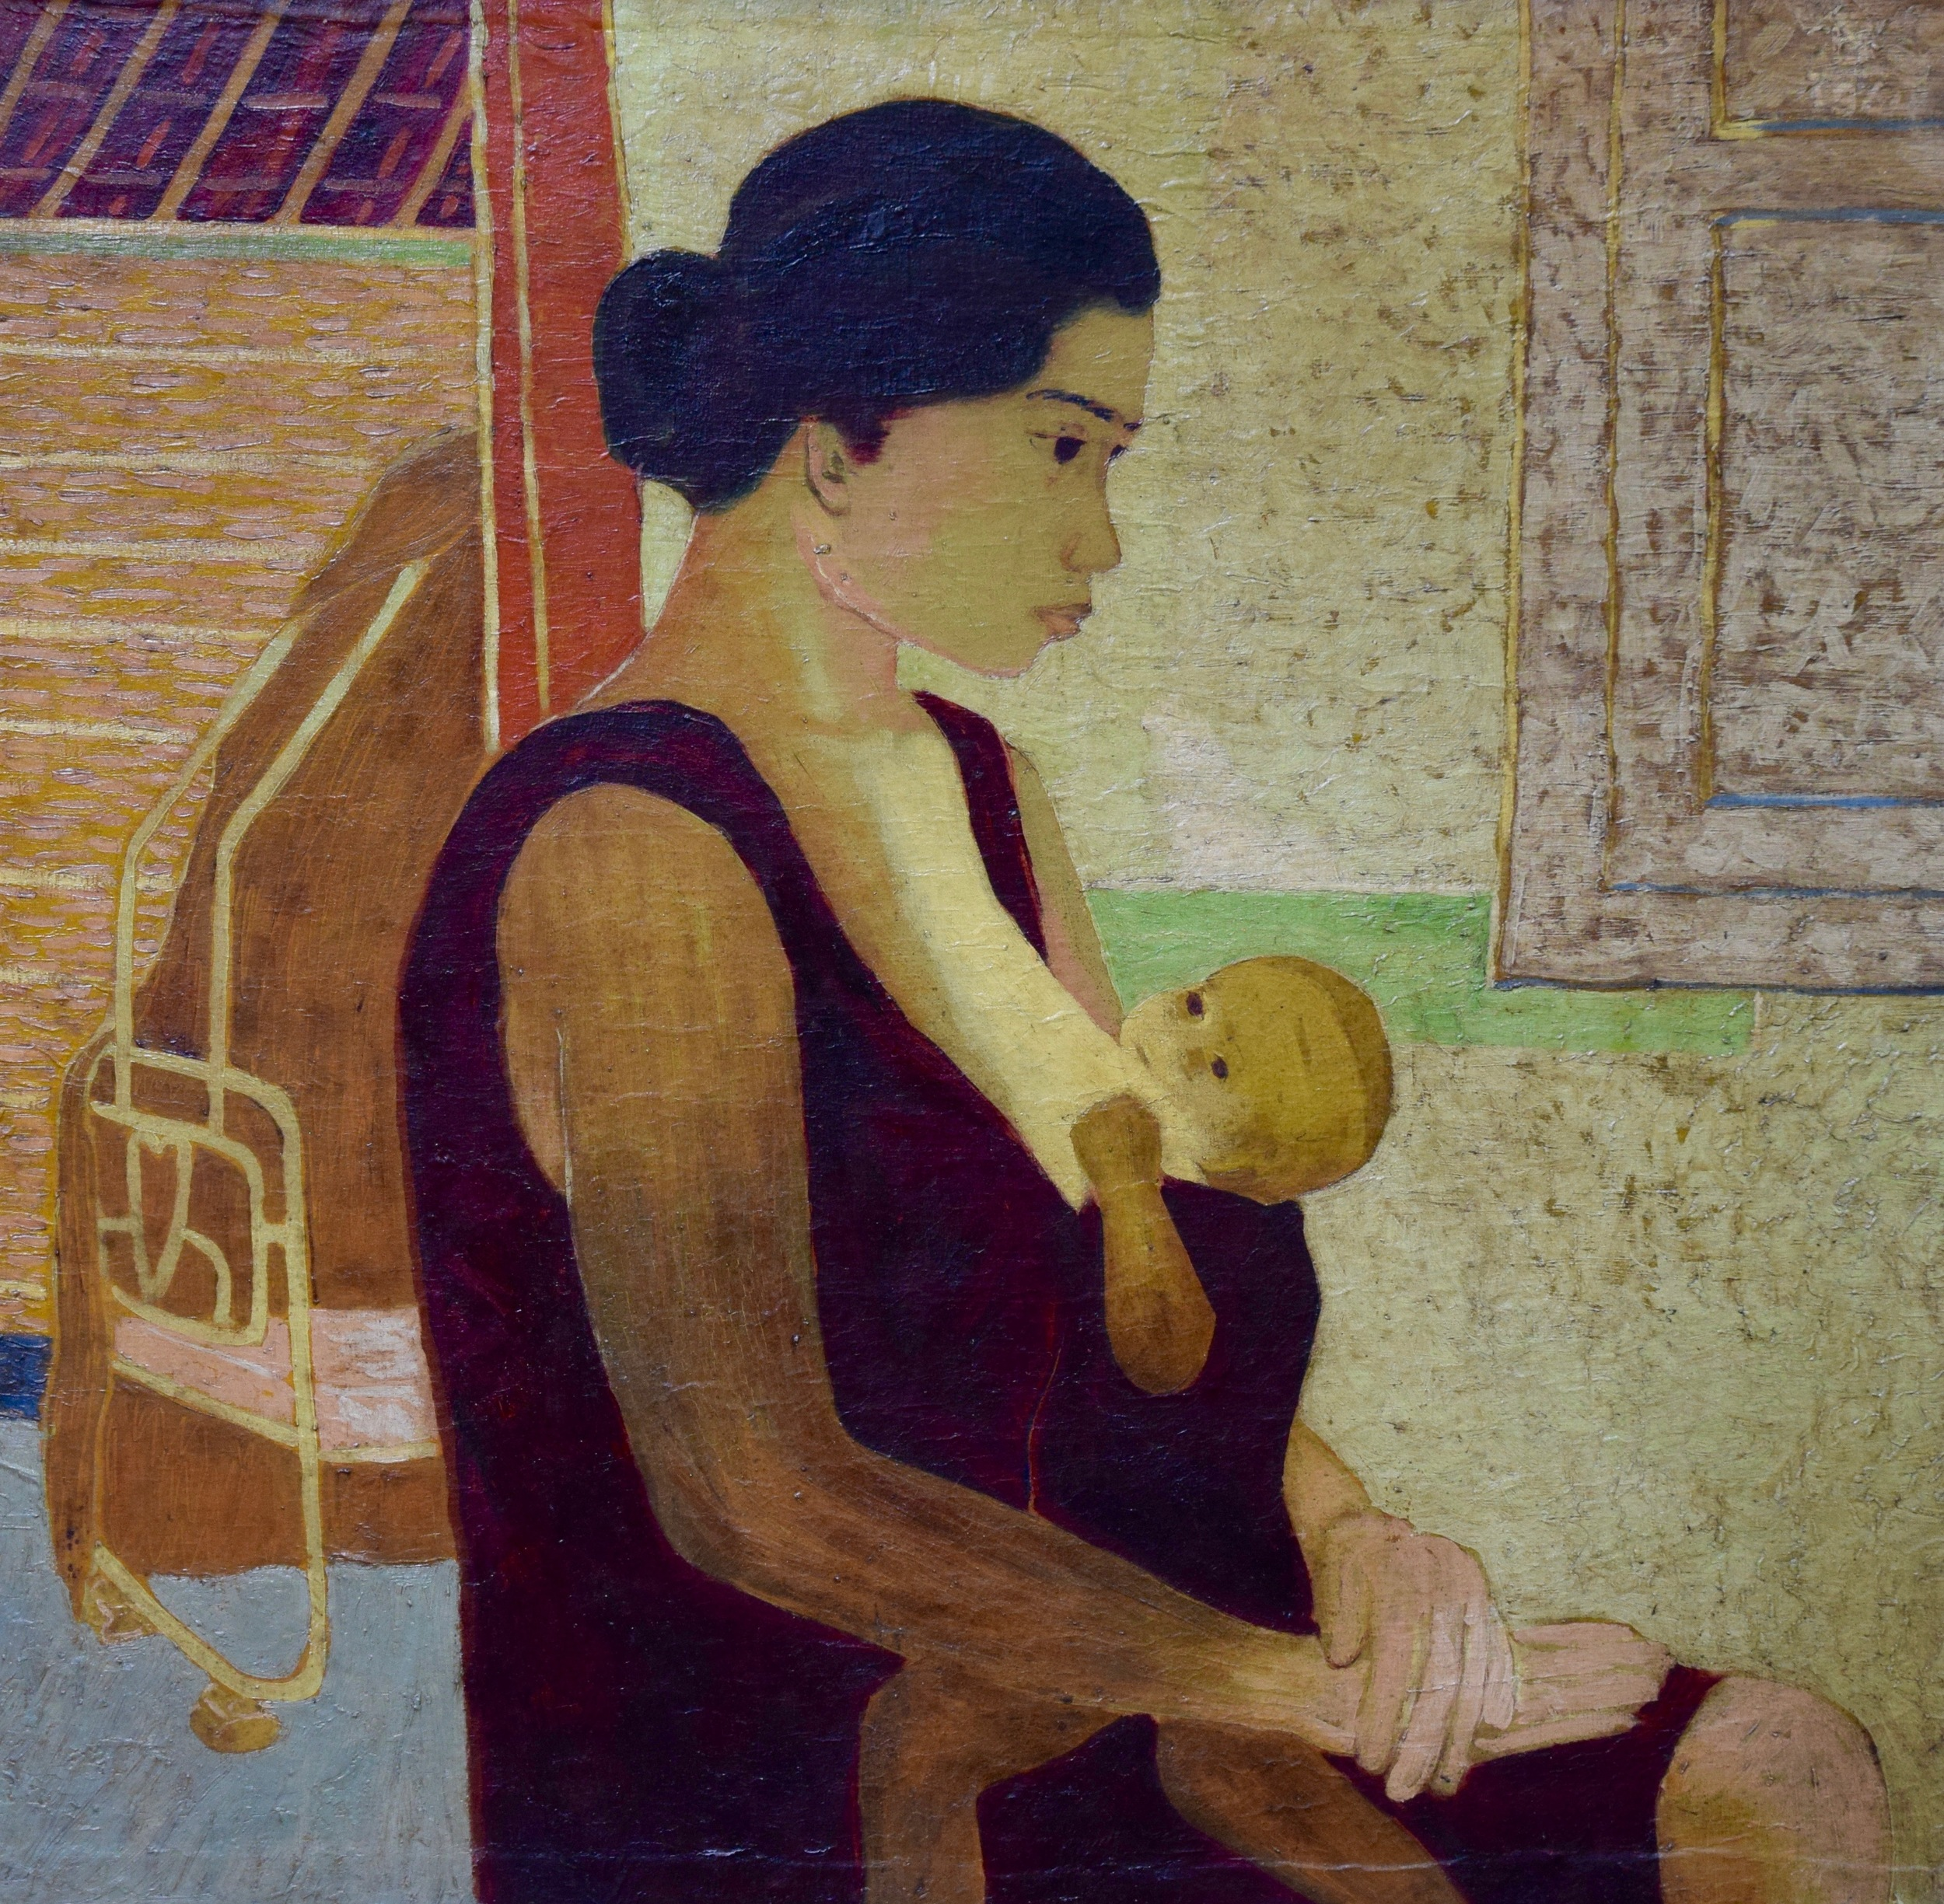 Artist: Nashar, Indonesia    Title: Kasih Ibu Medium: oil on canvas   Dimension: 70 cm x 72 cm Year: 1964